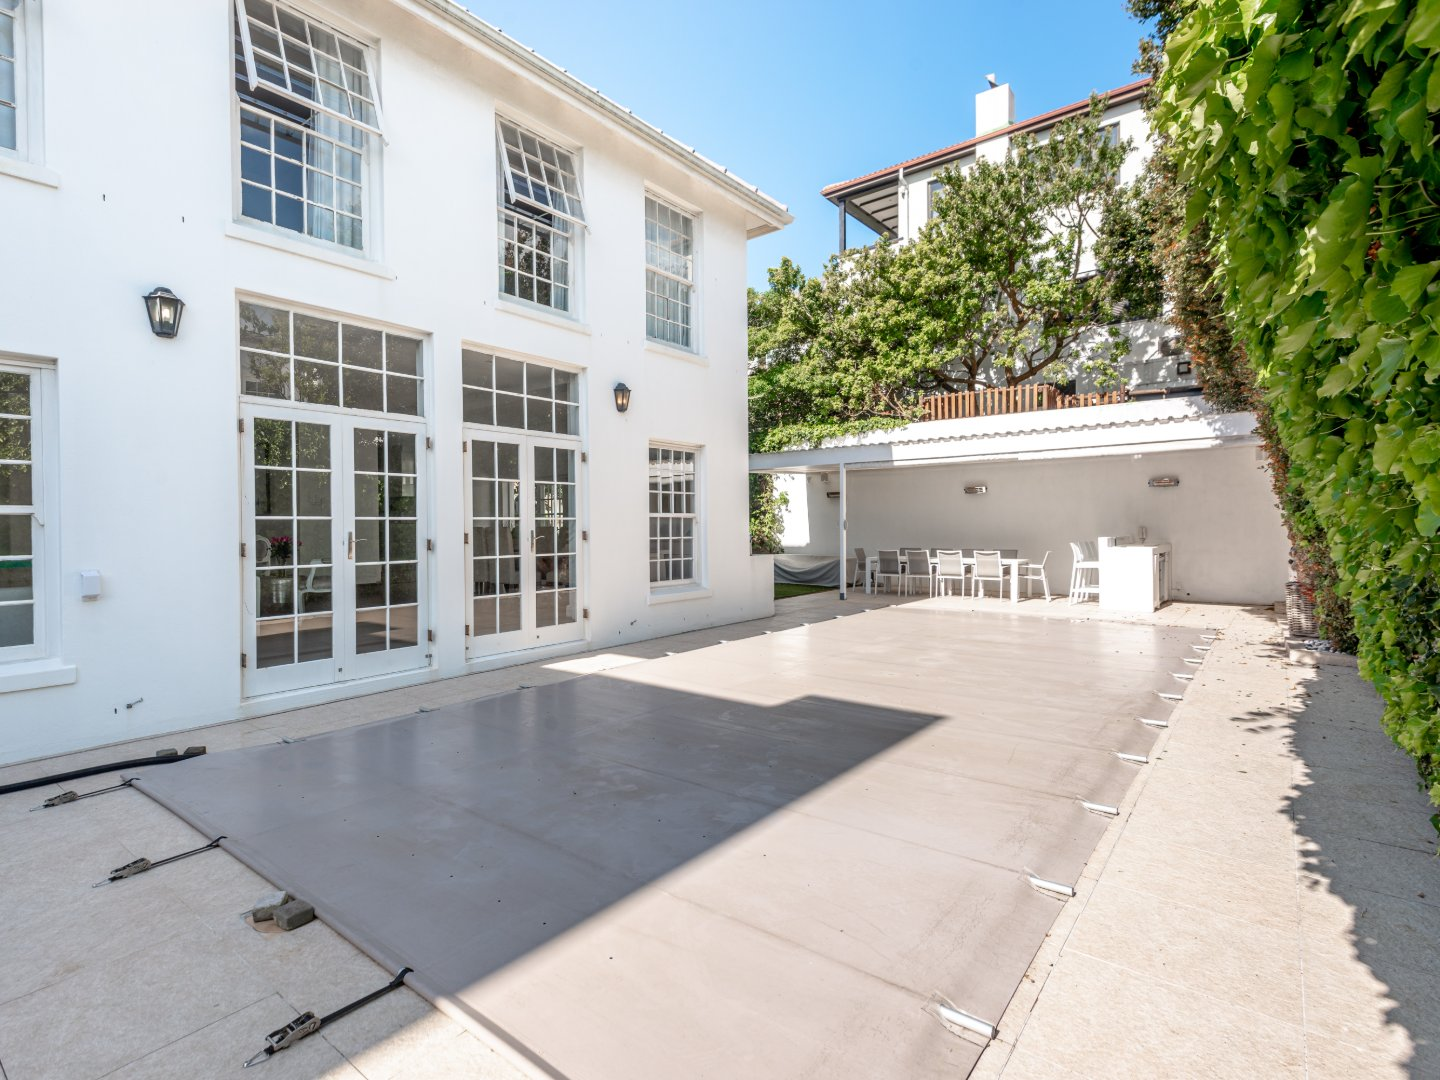 4 Bedroom Holiday Home in Camps Bay